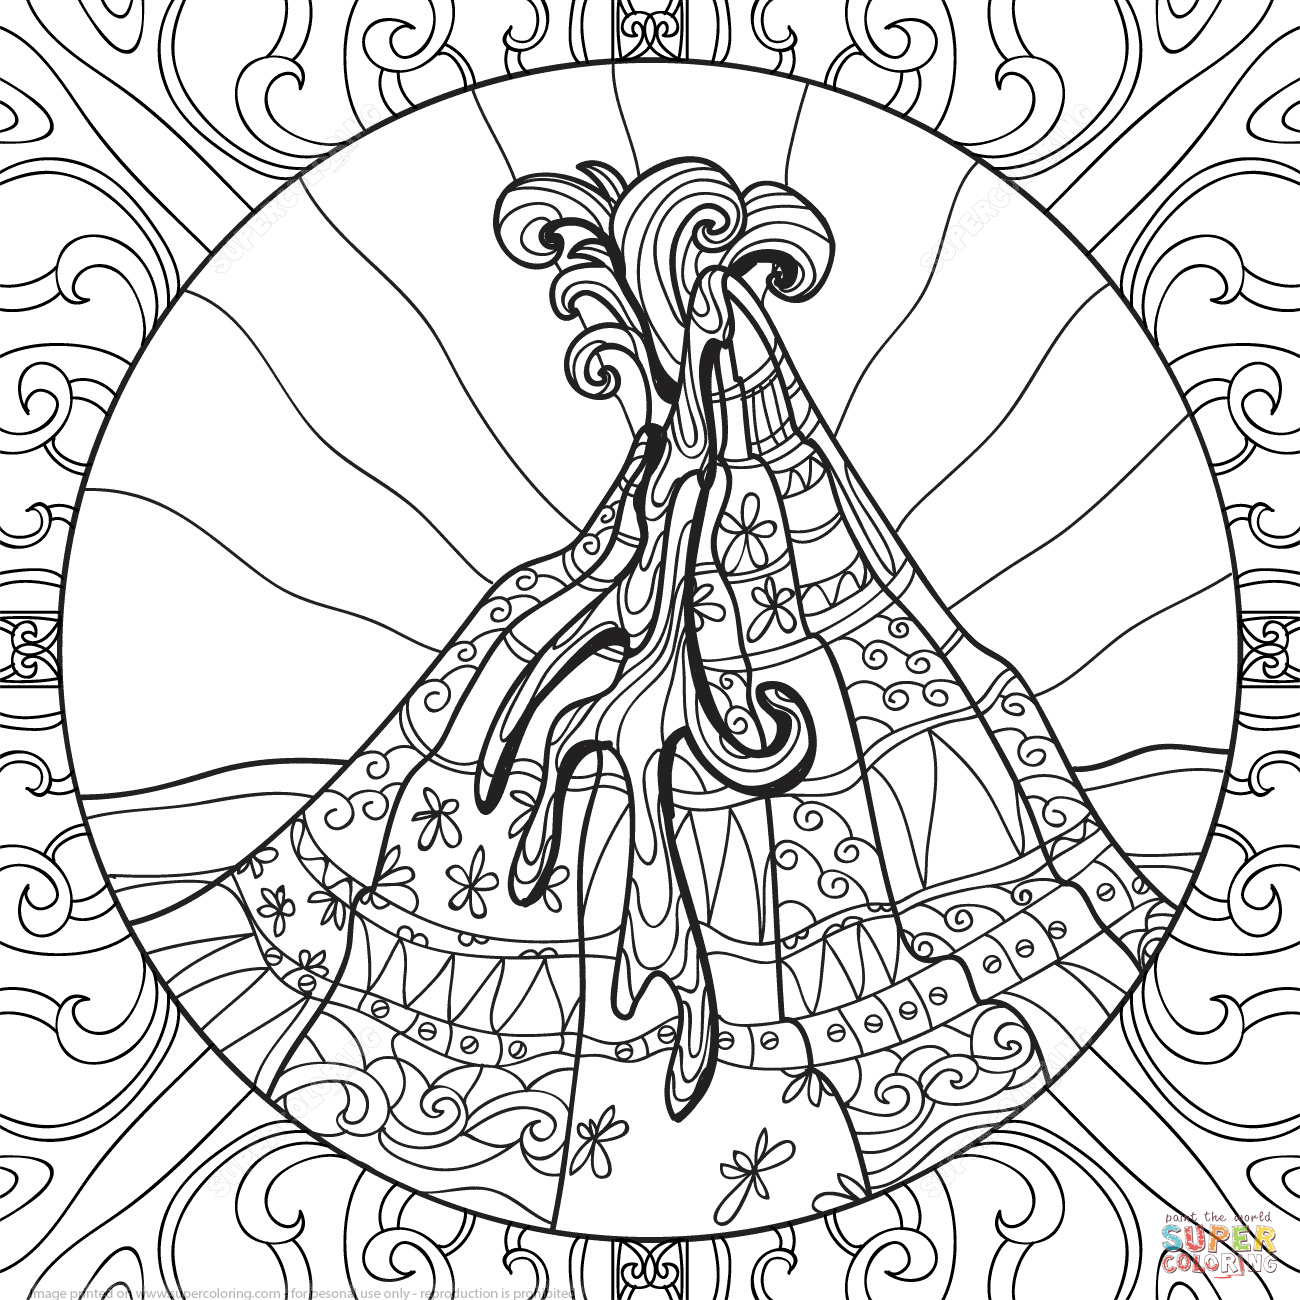 1300x1300 Volcano Zentangle Coloring Page Fireworks